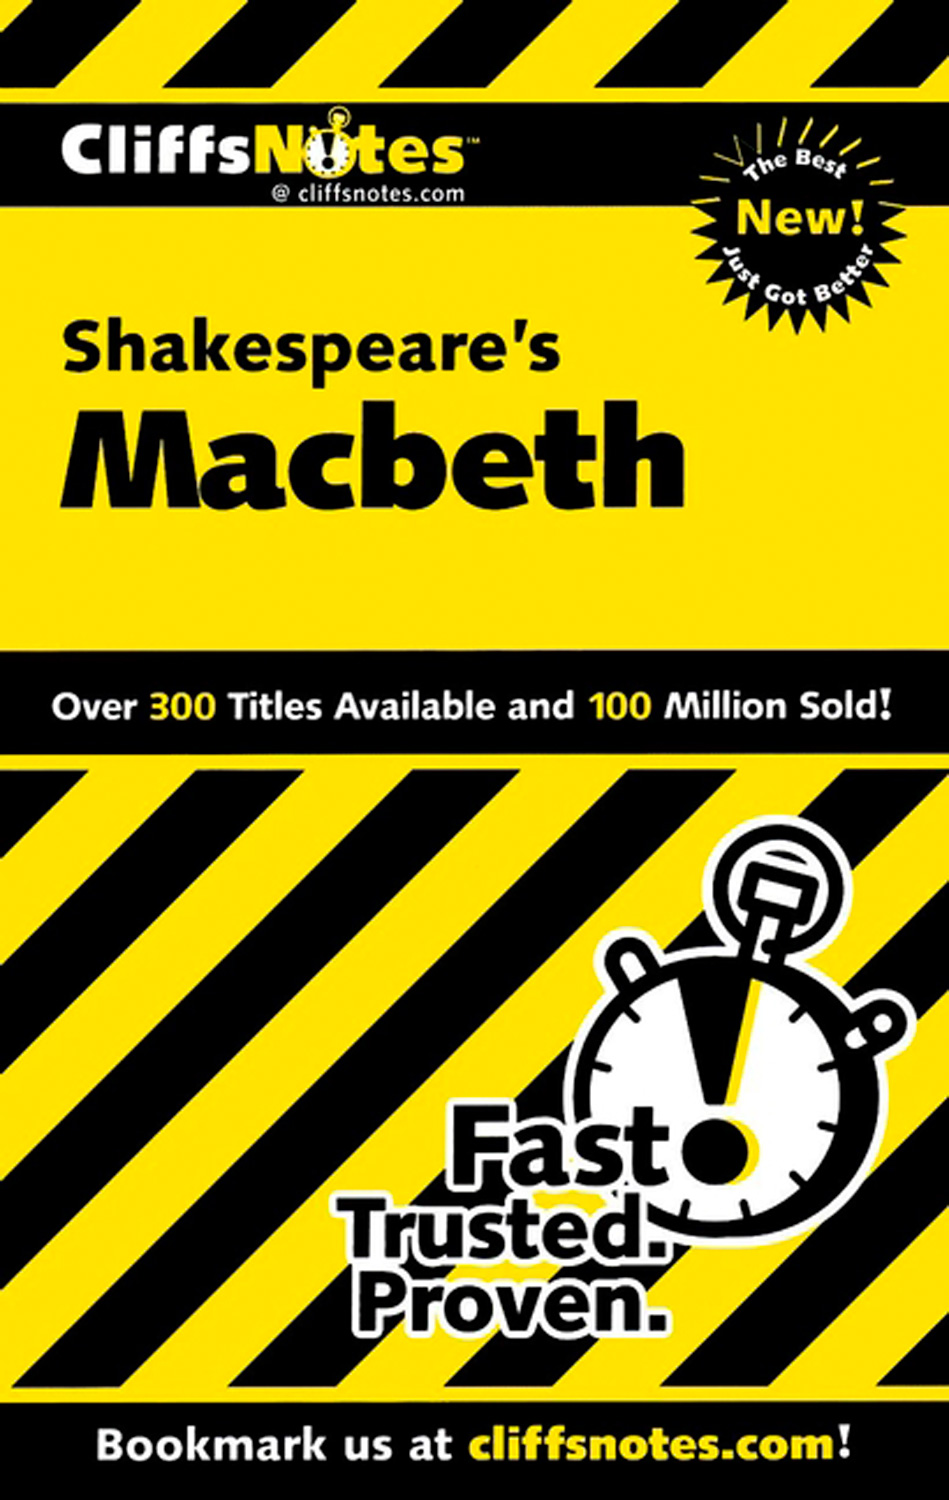 CliffsNotes on Shakespeare's Macbeth-9780764586026